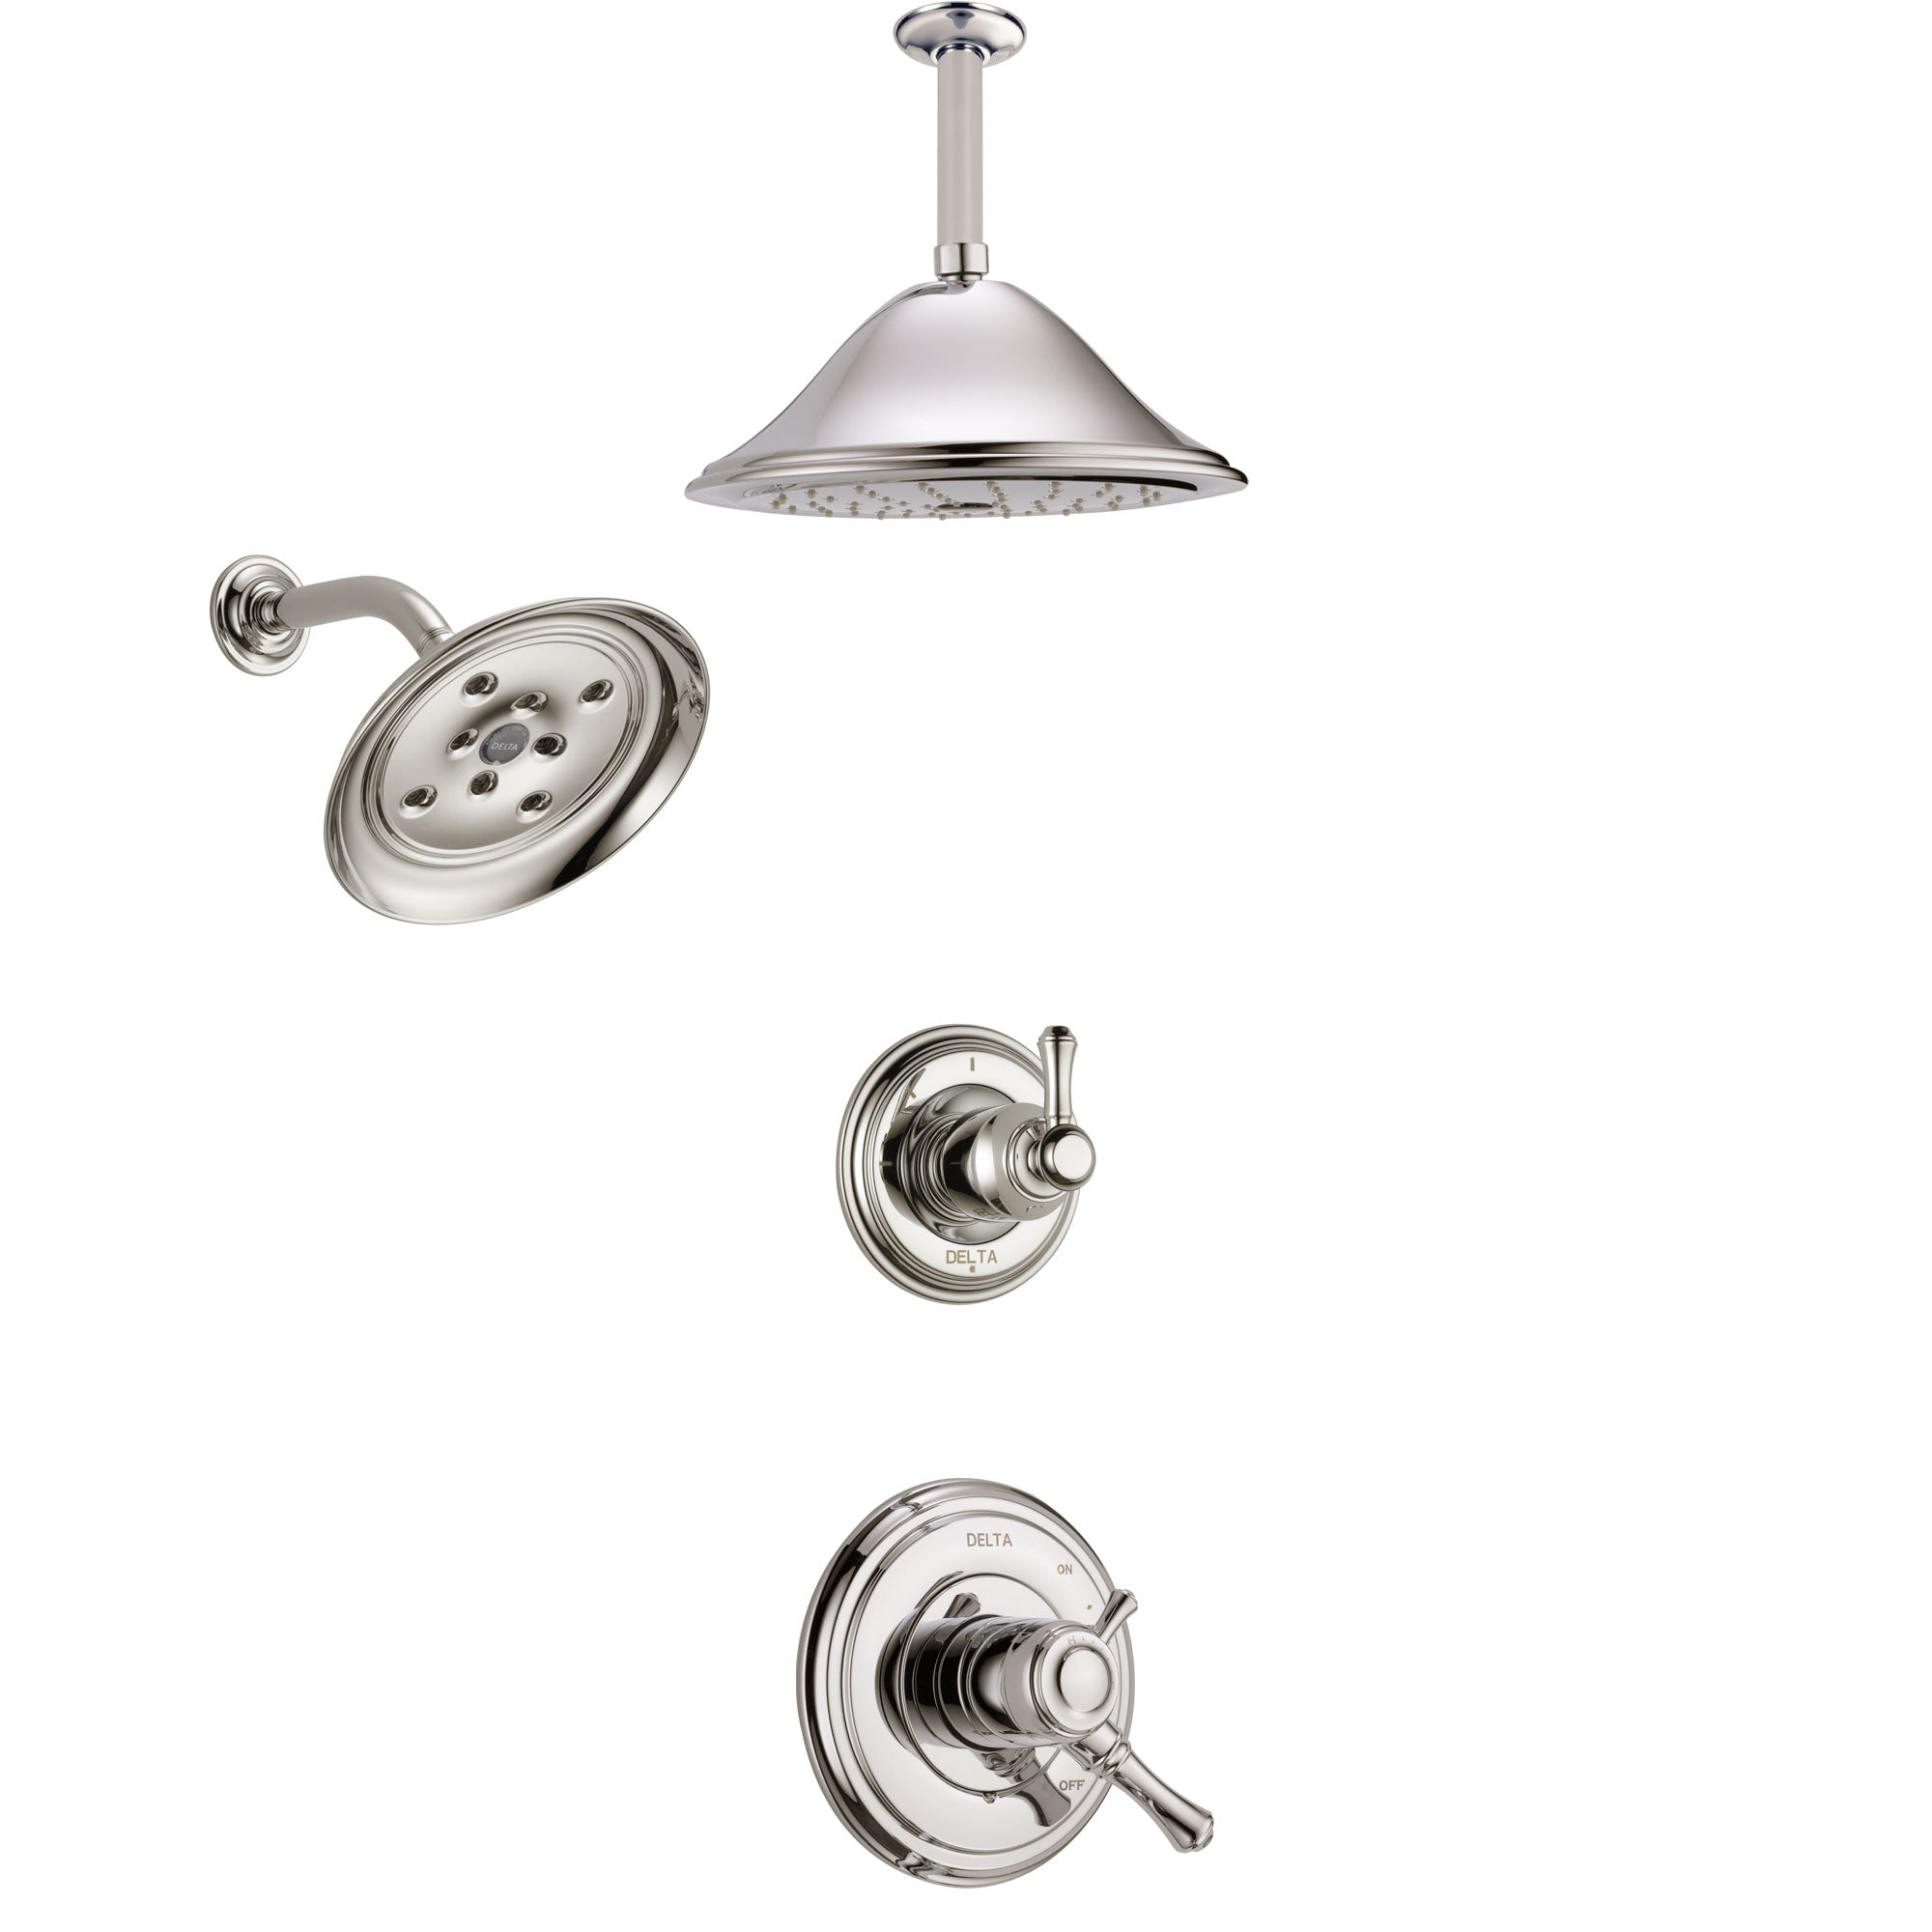 Delta Cassidy Polished Nickel Finish Shower System with Dual Control Handle, 3-Setting Diverter, Showerhead, and Ceiling Mount Showerhead SS17297PN3